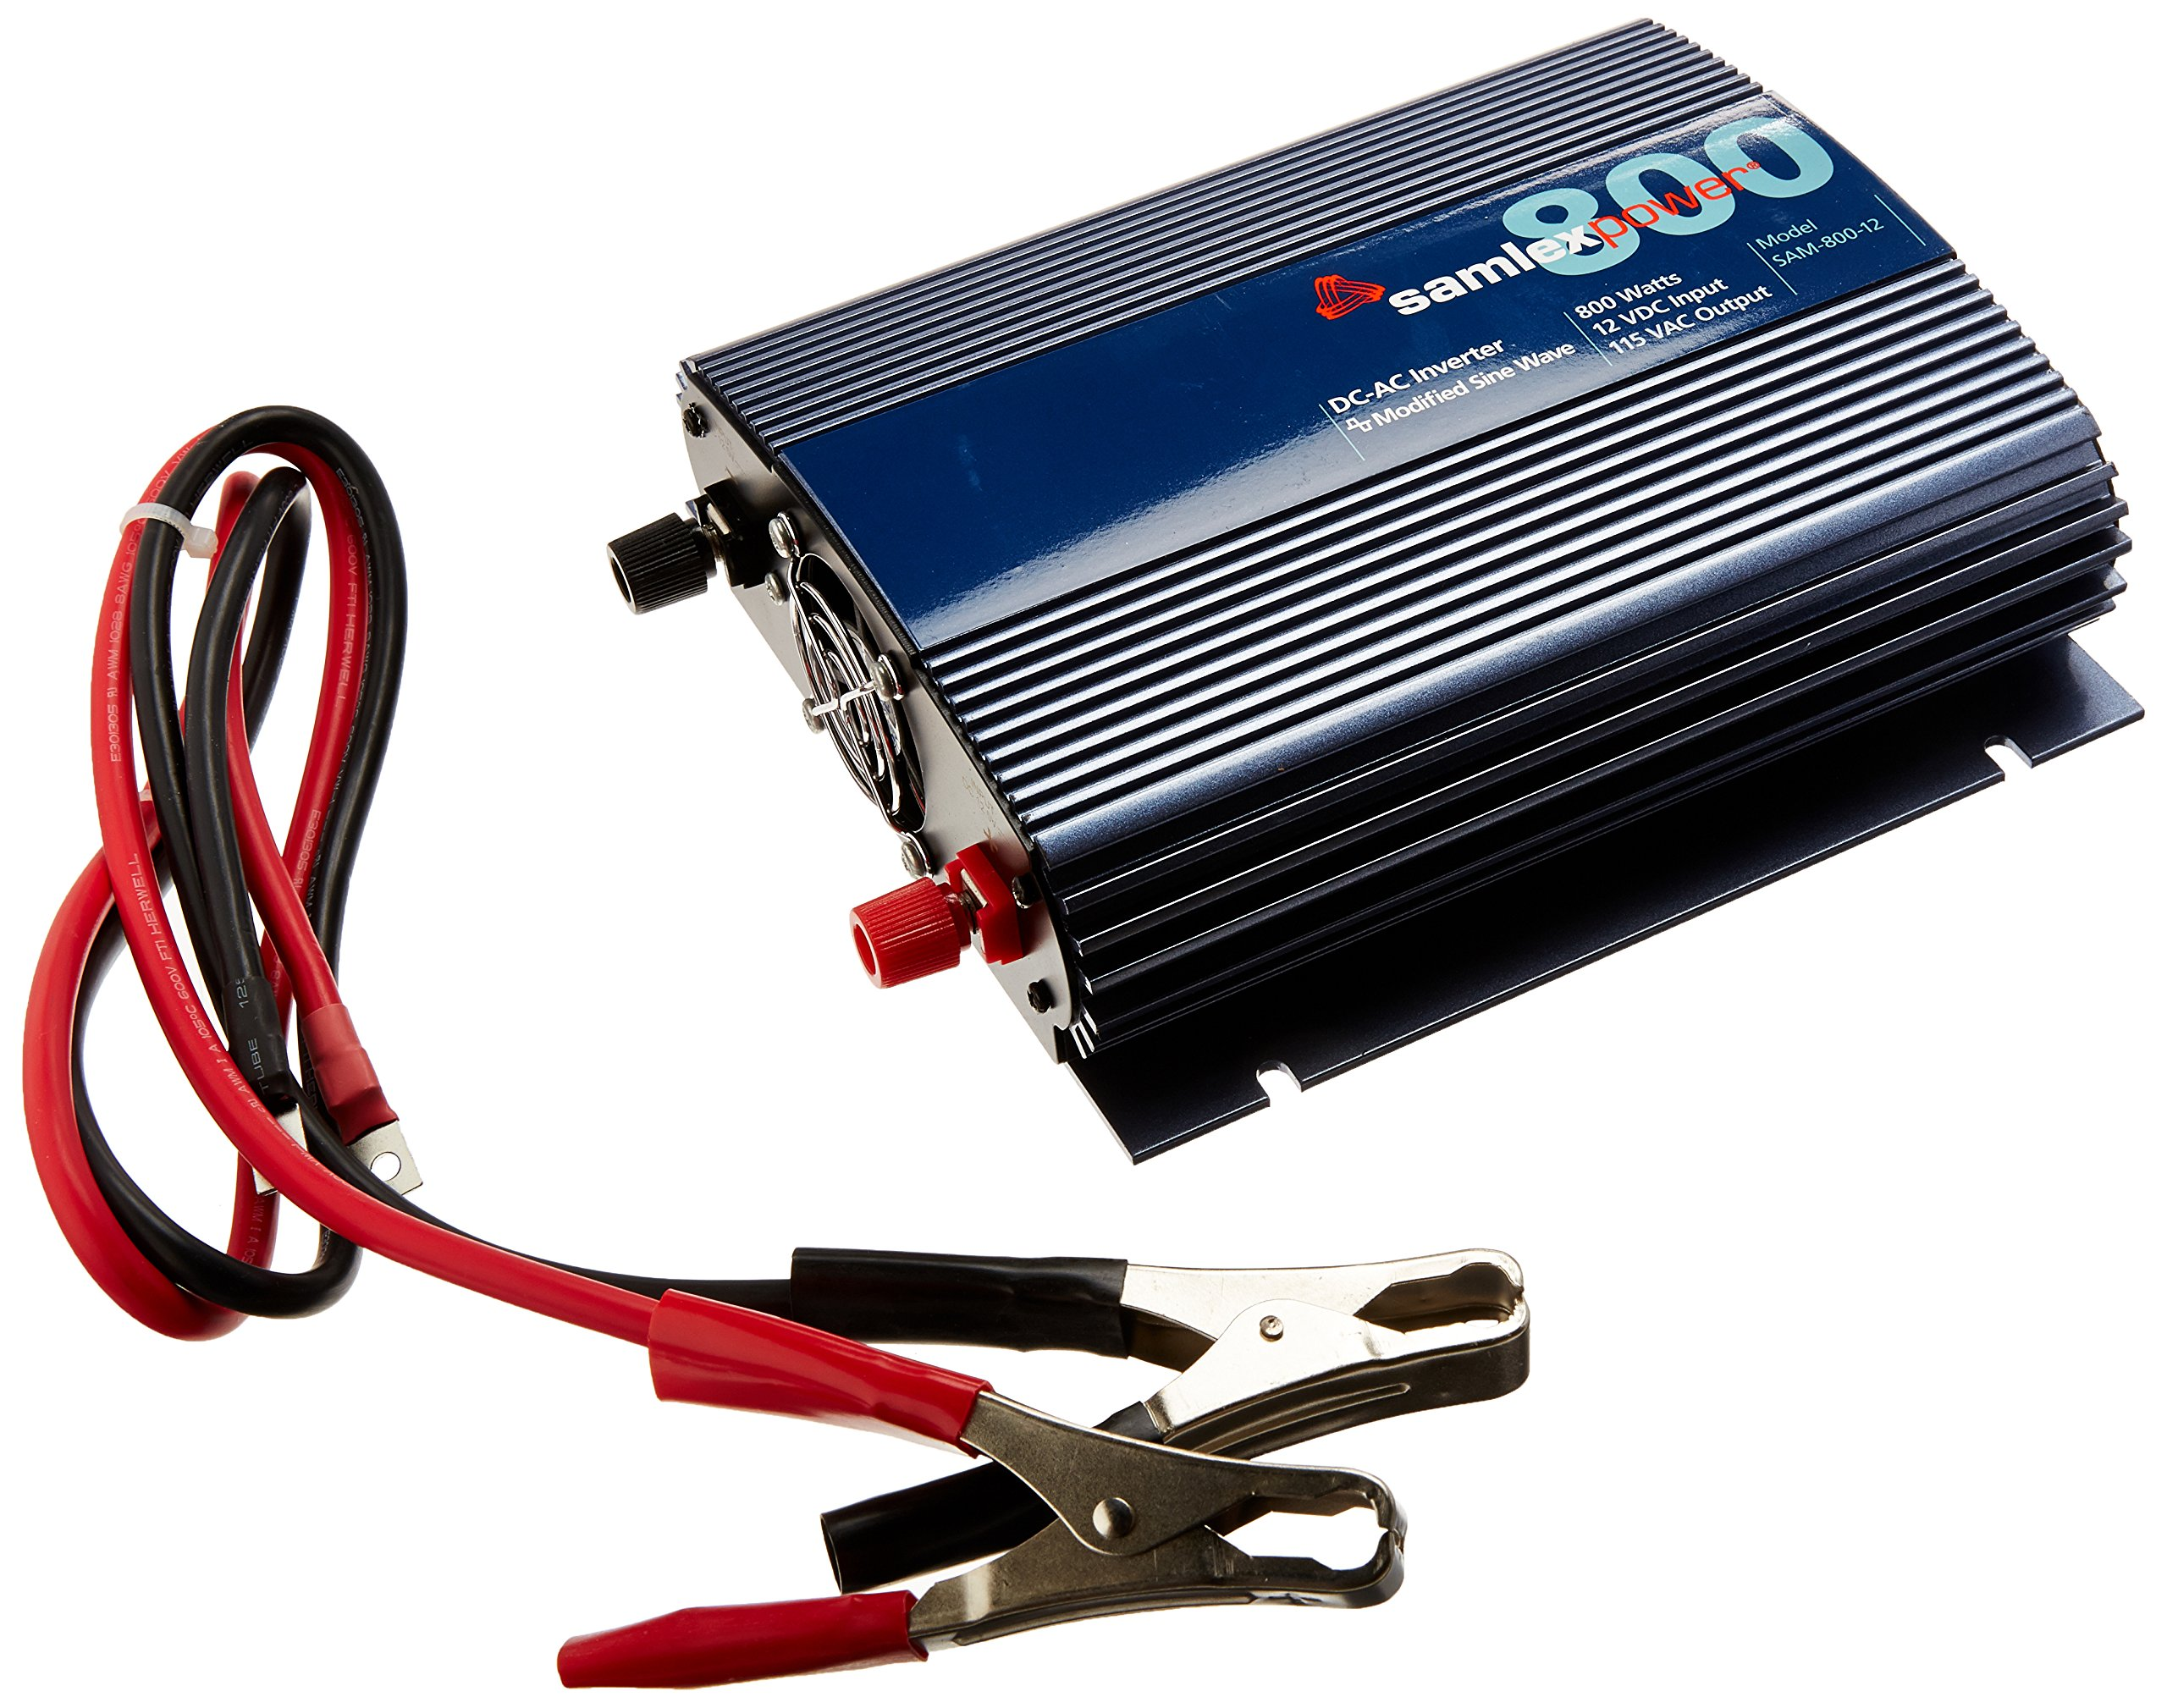 Samlex Solar SAM-800-12 SAM Series Modified Sine Wave Inverter by Samlex America